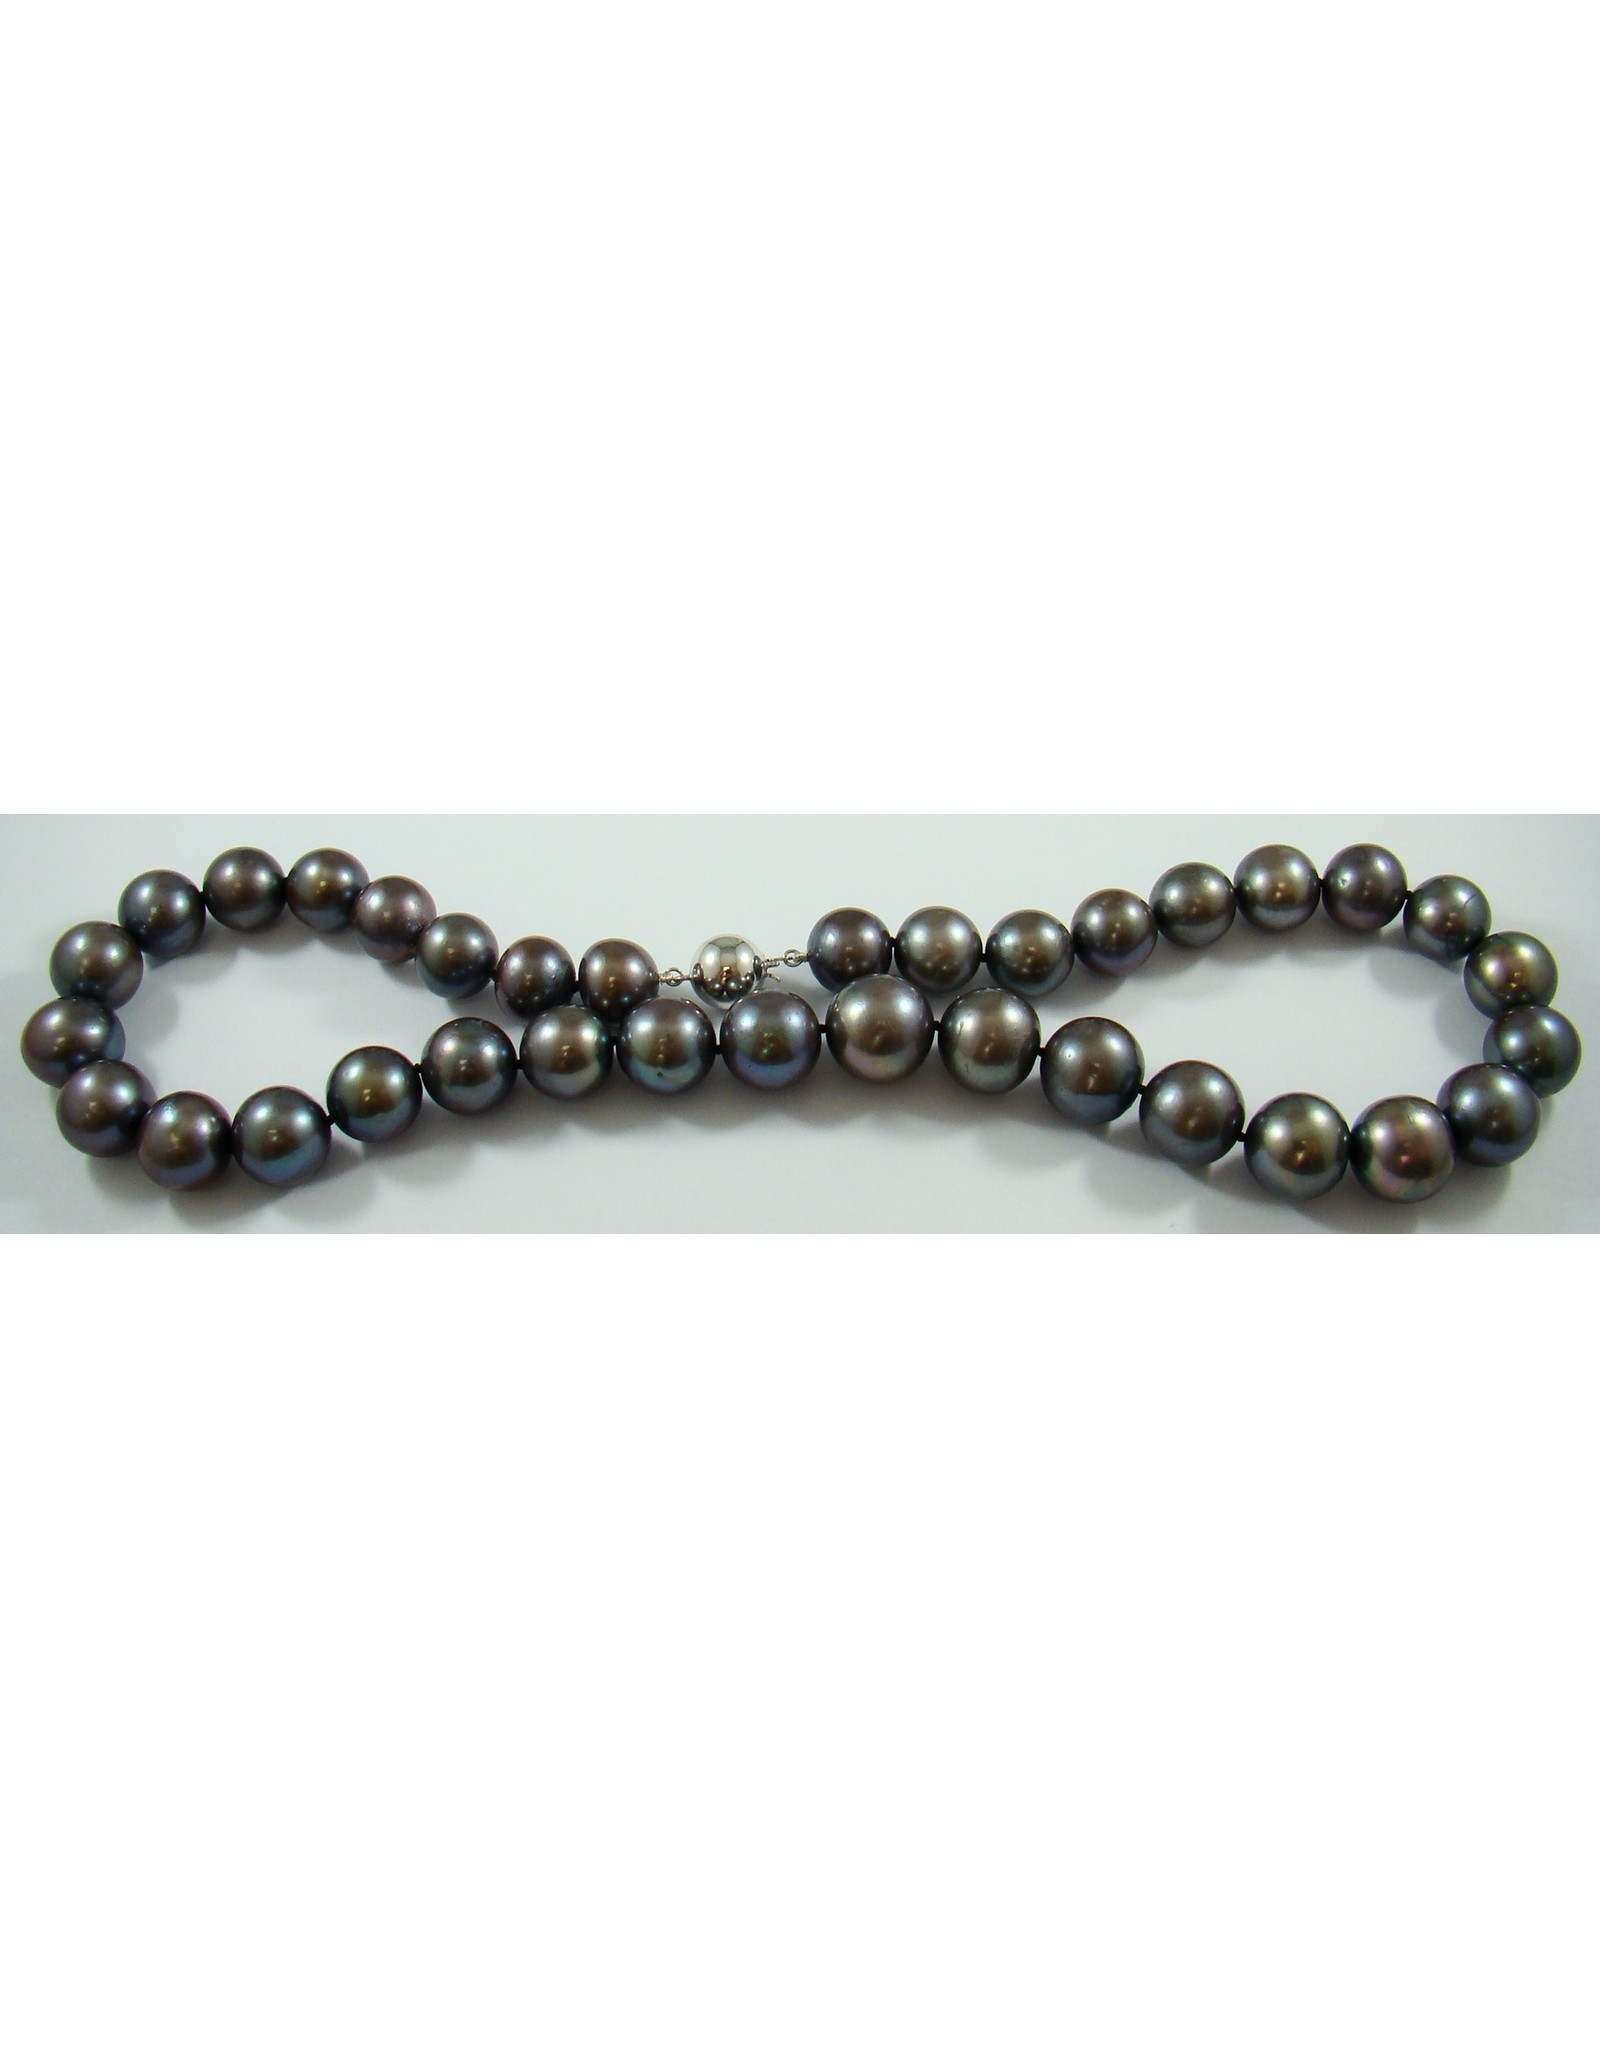 Gray Freshwater (12-15mm) Pearl Necklace 14KW